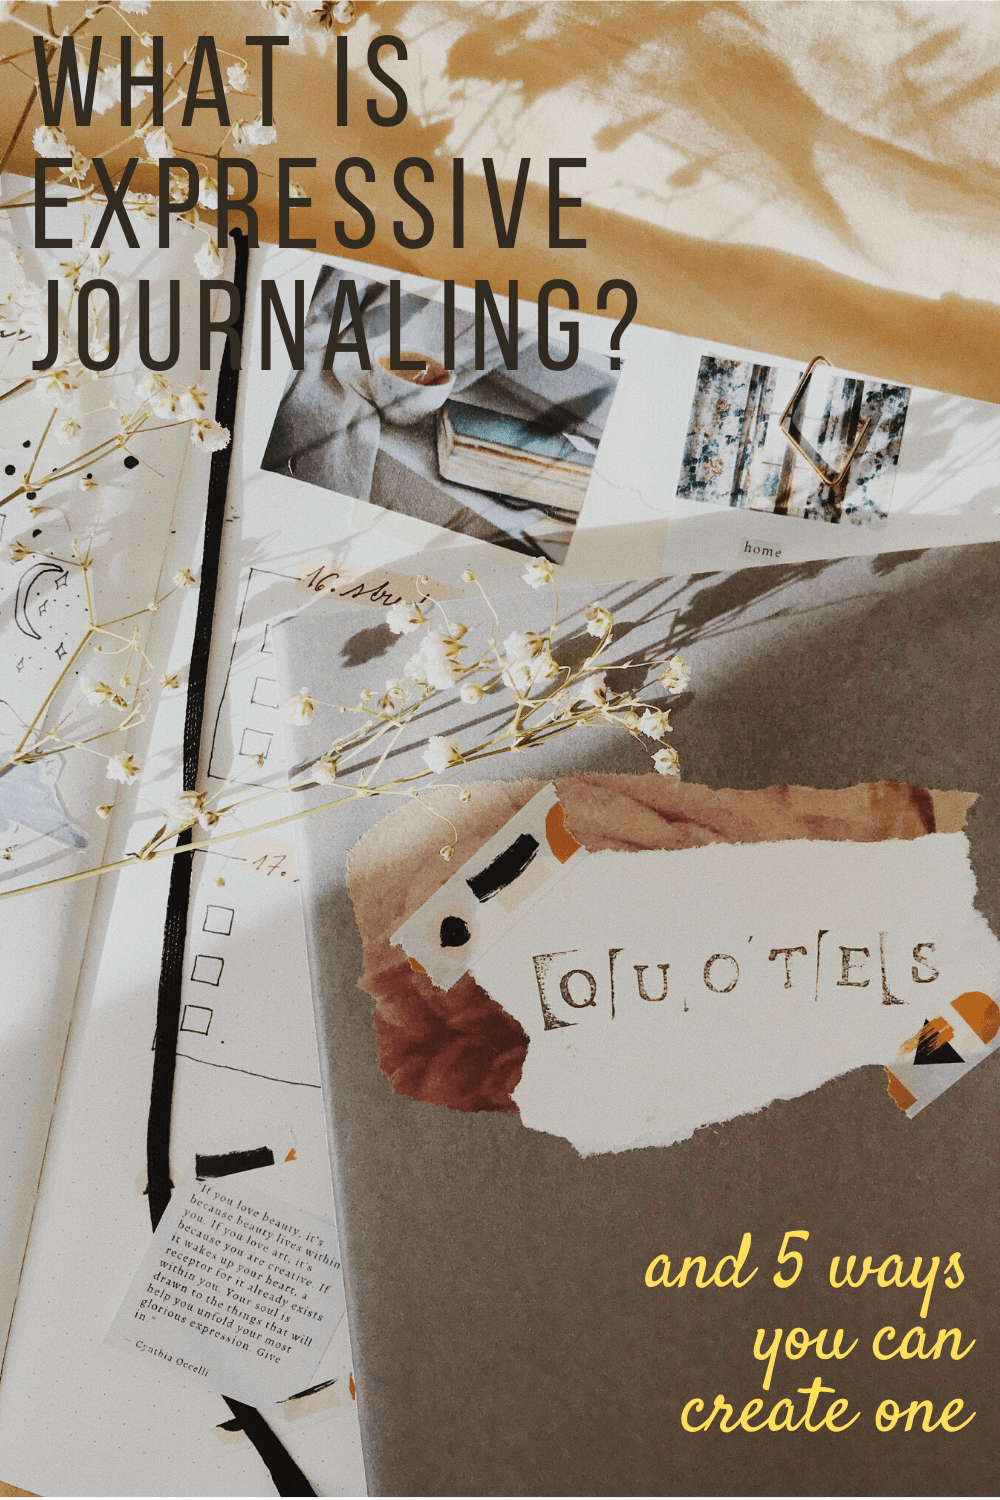 Have you ever tried keeping an expressive journal? It's a very powerful way to work through your feelings in a safe environment